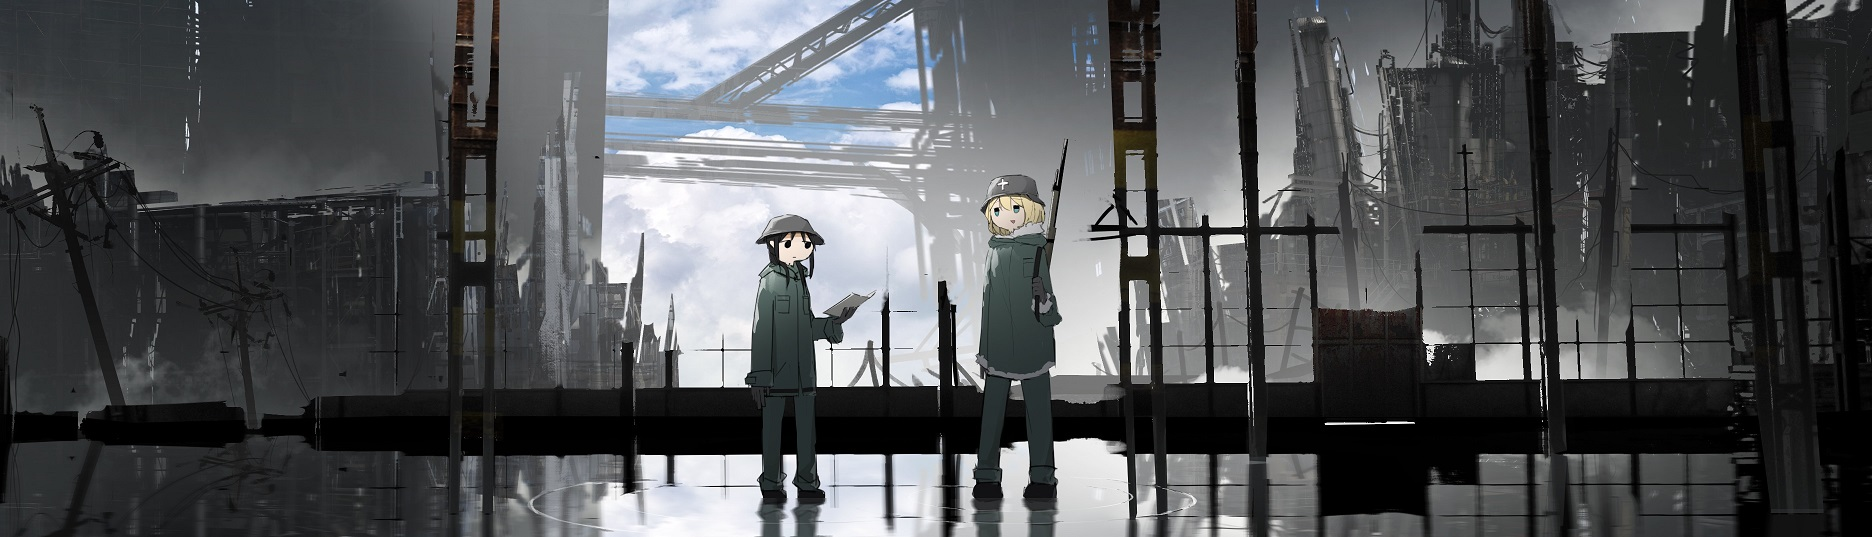 Avis Omaké Manga : Girls' Last Tour – Tome 4 blog manga lageekroom